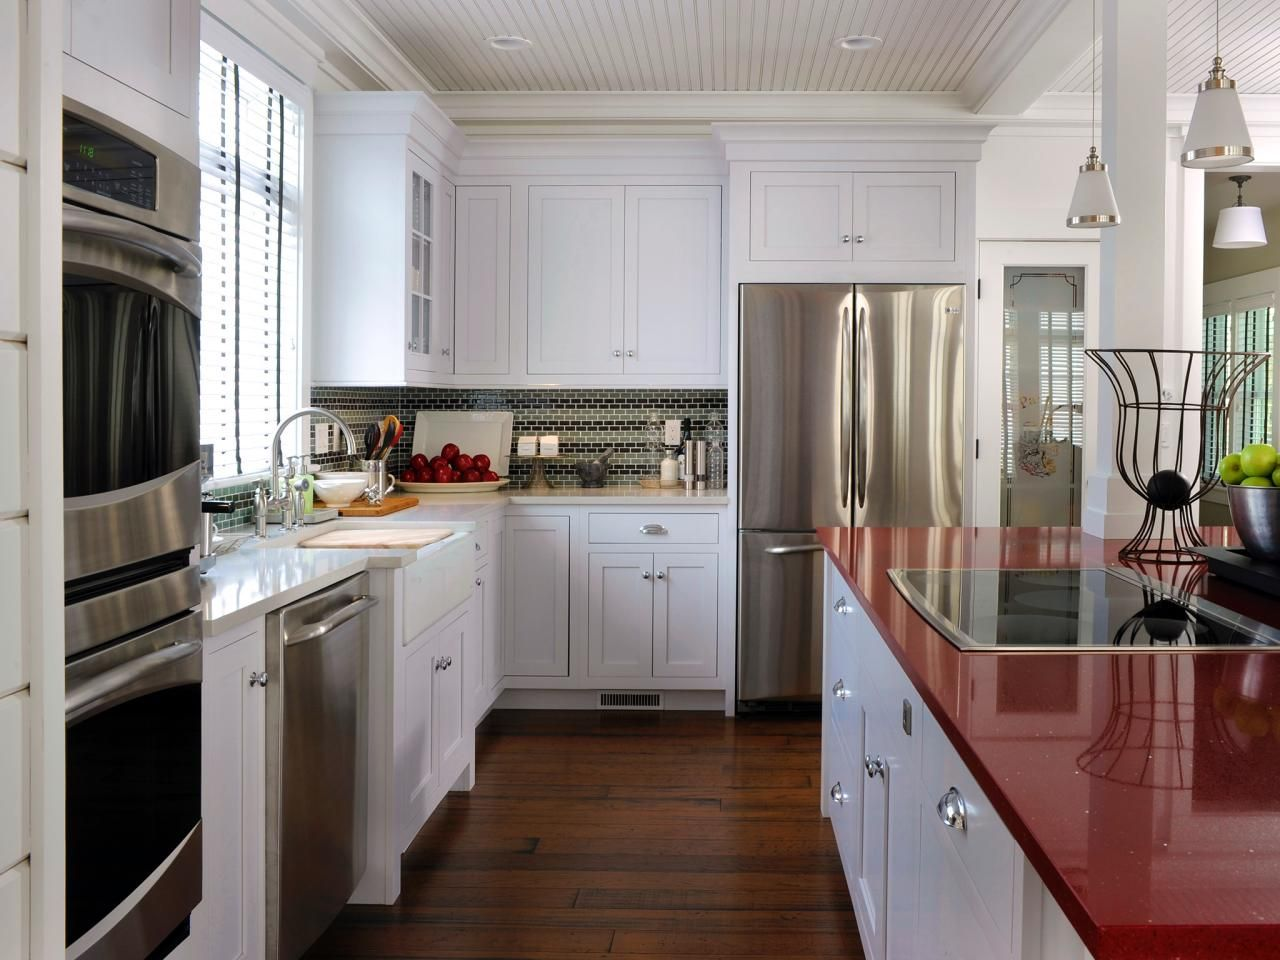 Inspired Examples of Quartz Kitchen Countertops